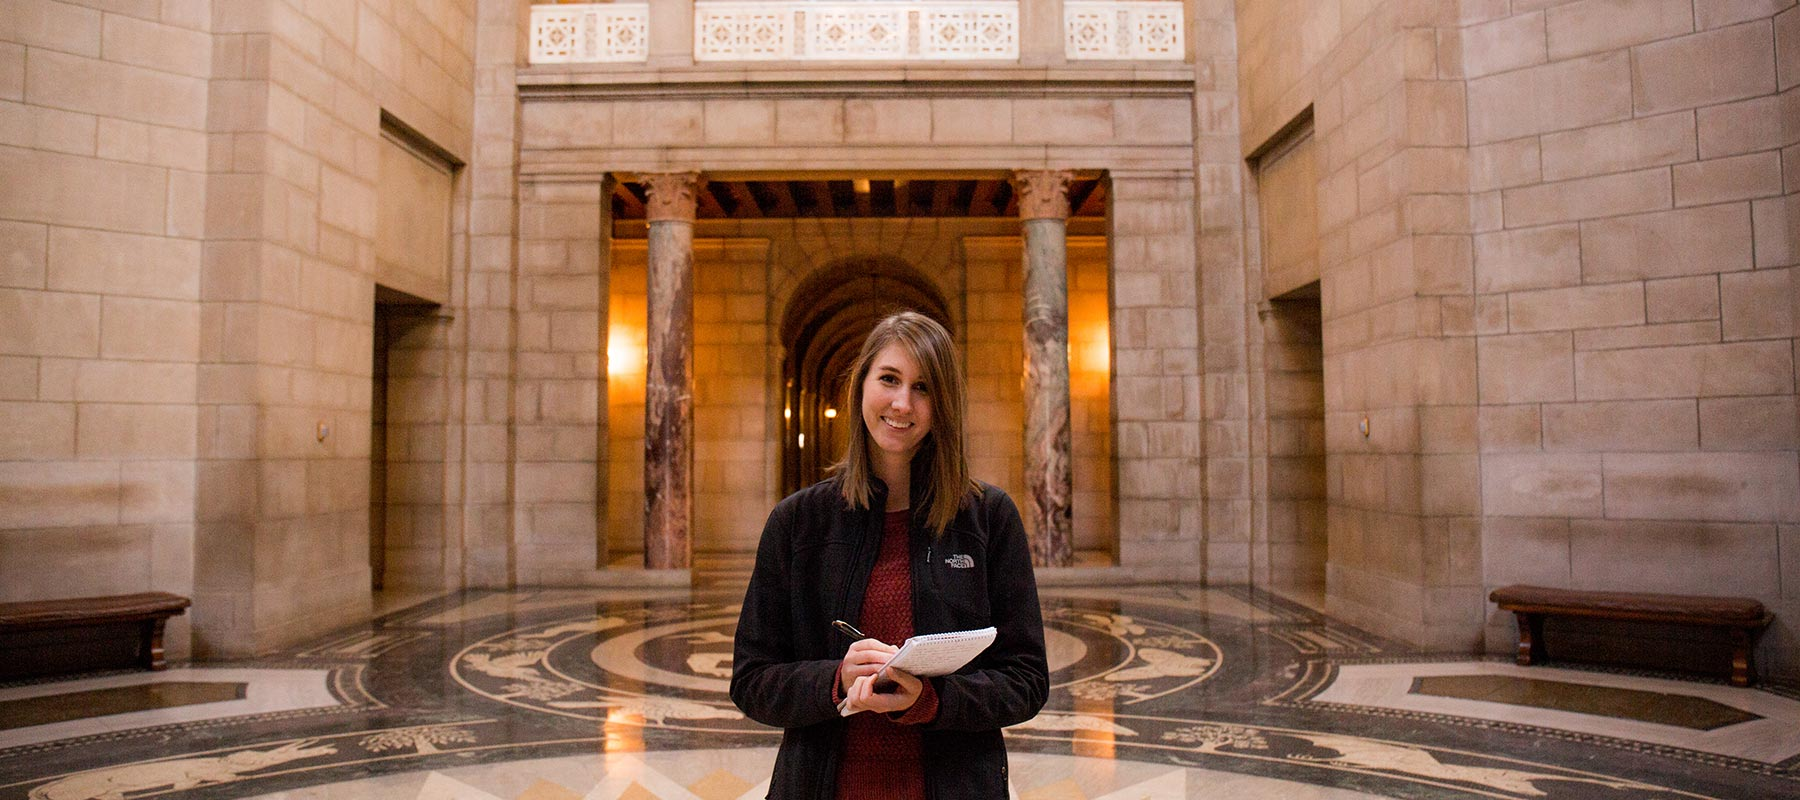 Nebraska News Service student reports on events at the state capitol